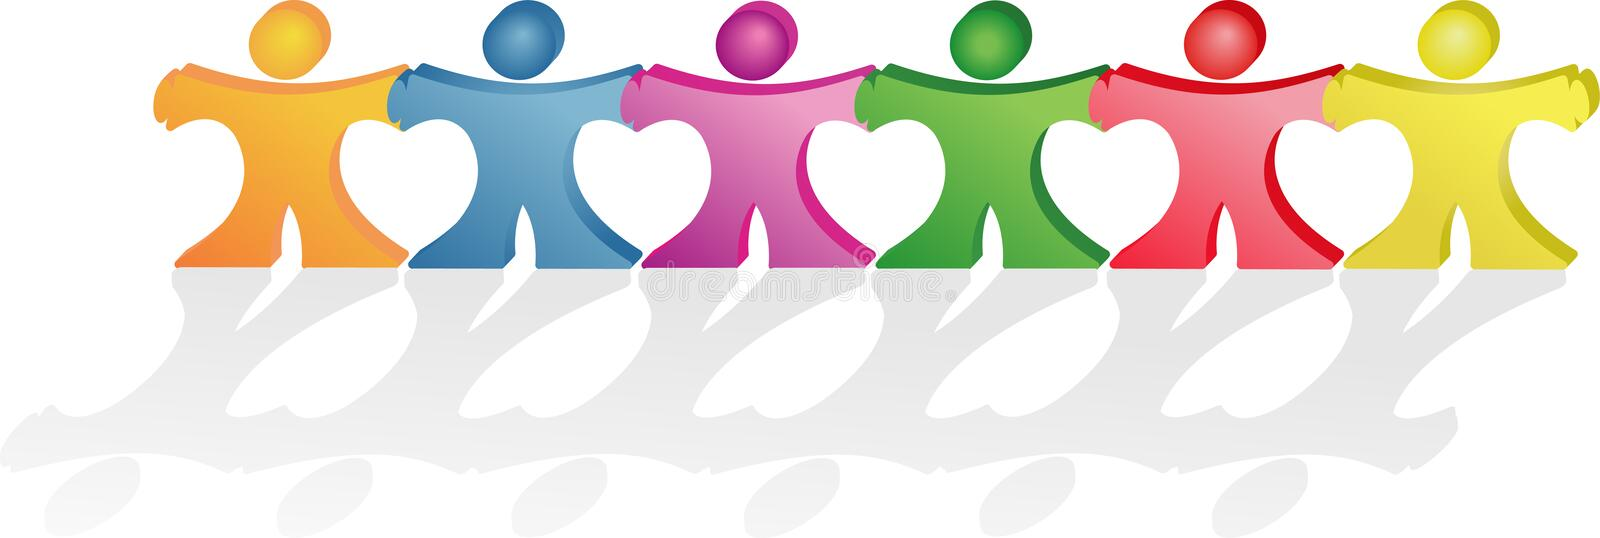 Download People Holding Hands Making Together Hearts Shapes Stock Vector - Image: 1031538